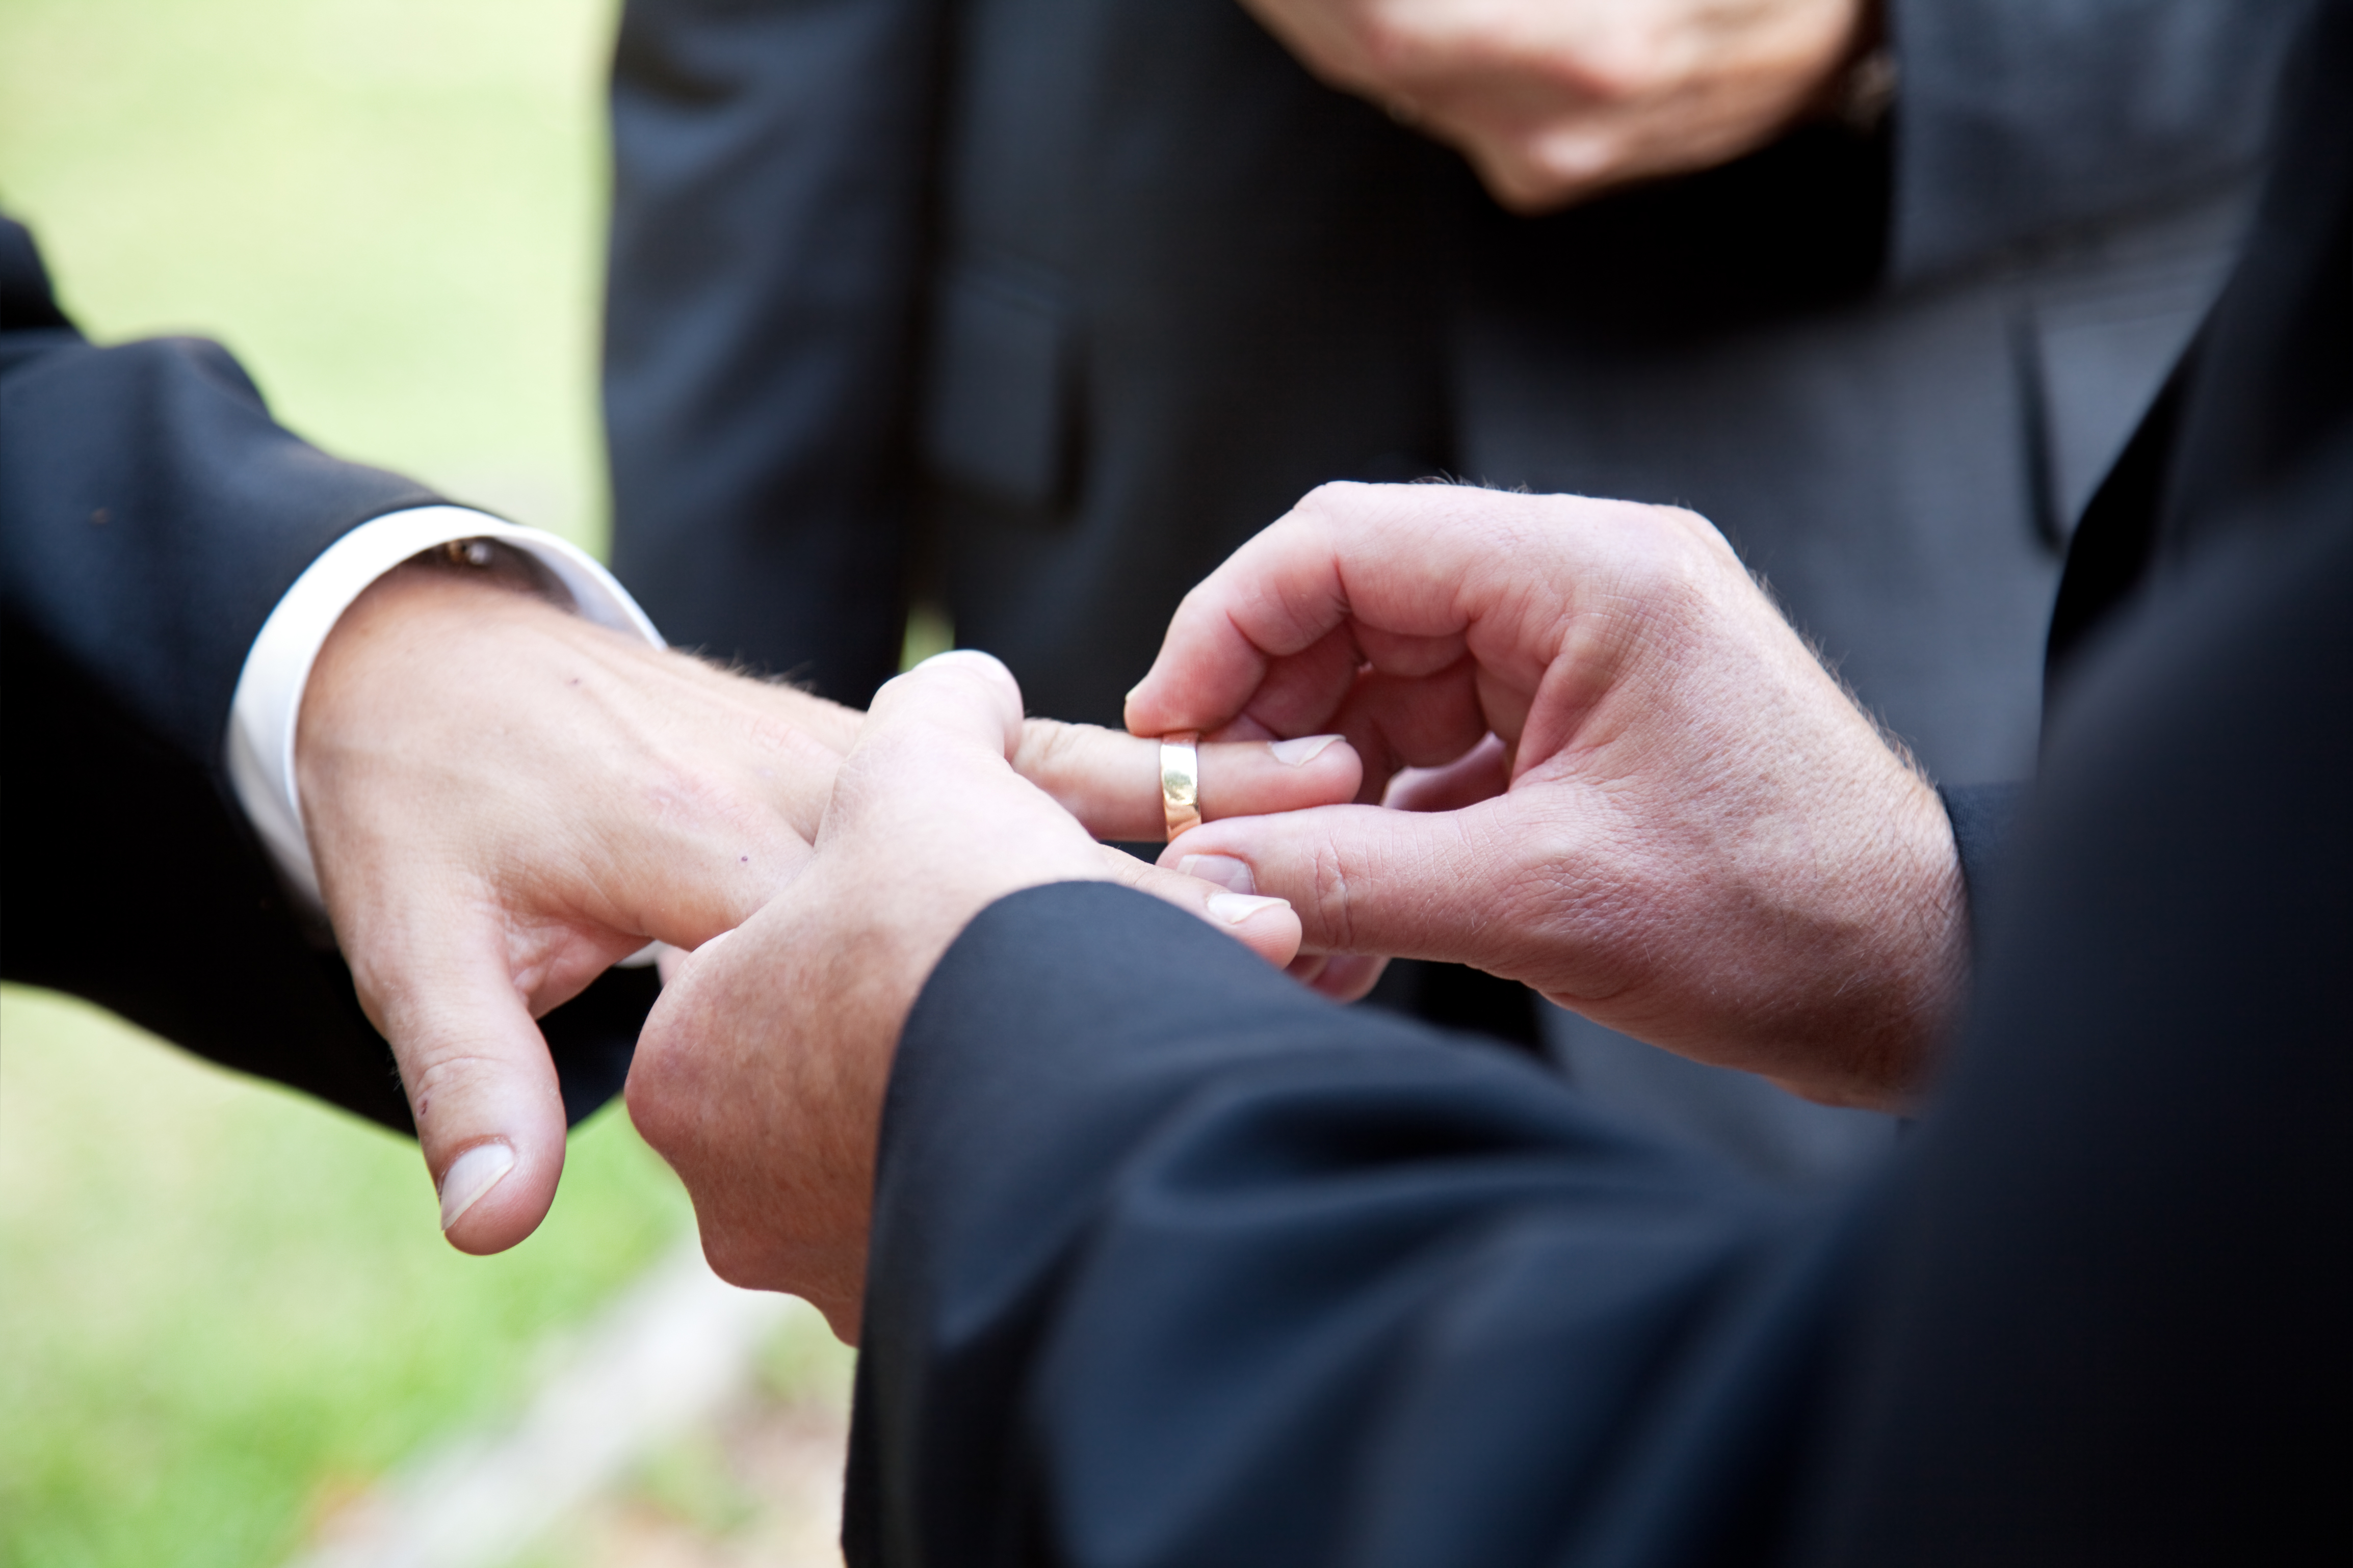 Florida Federal Judge Rules in Favor of Marriage Equality